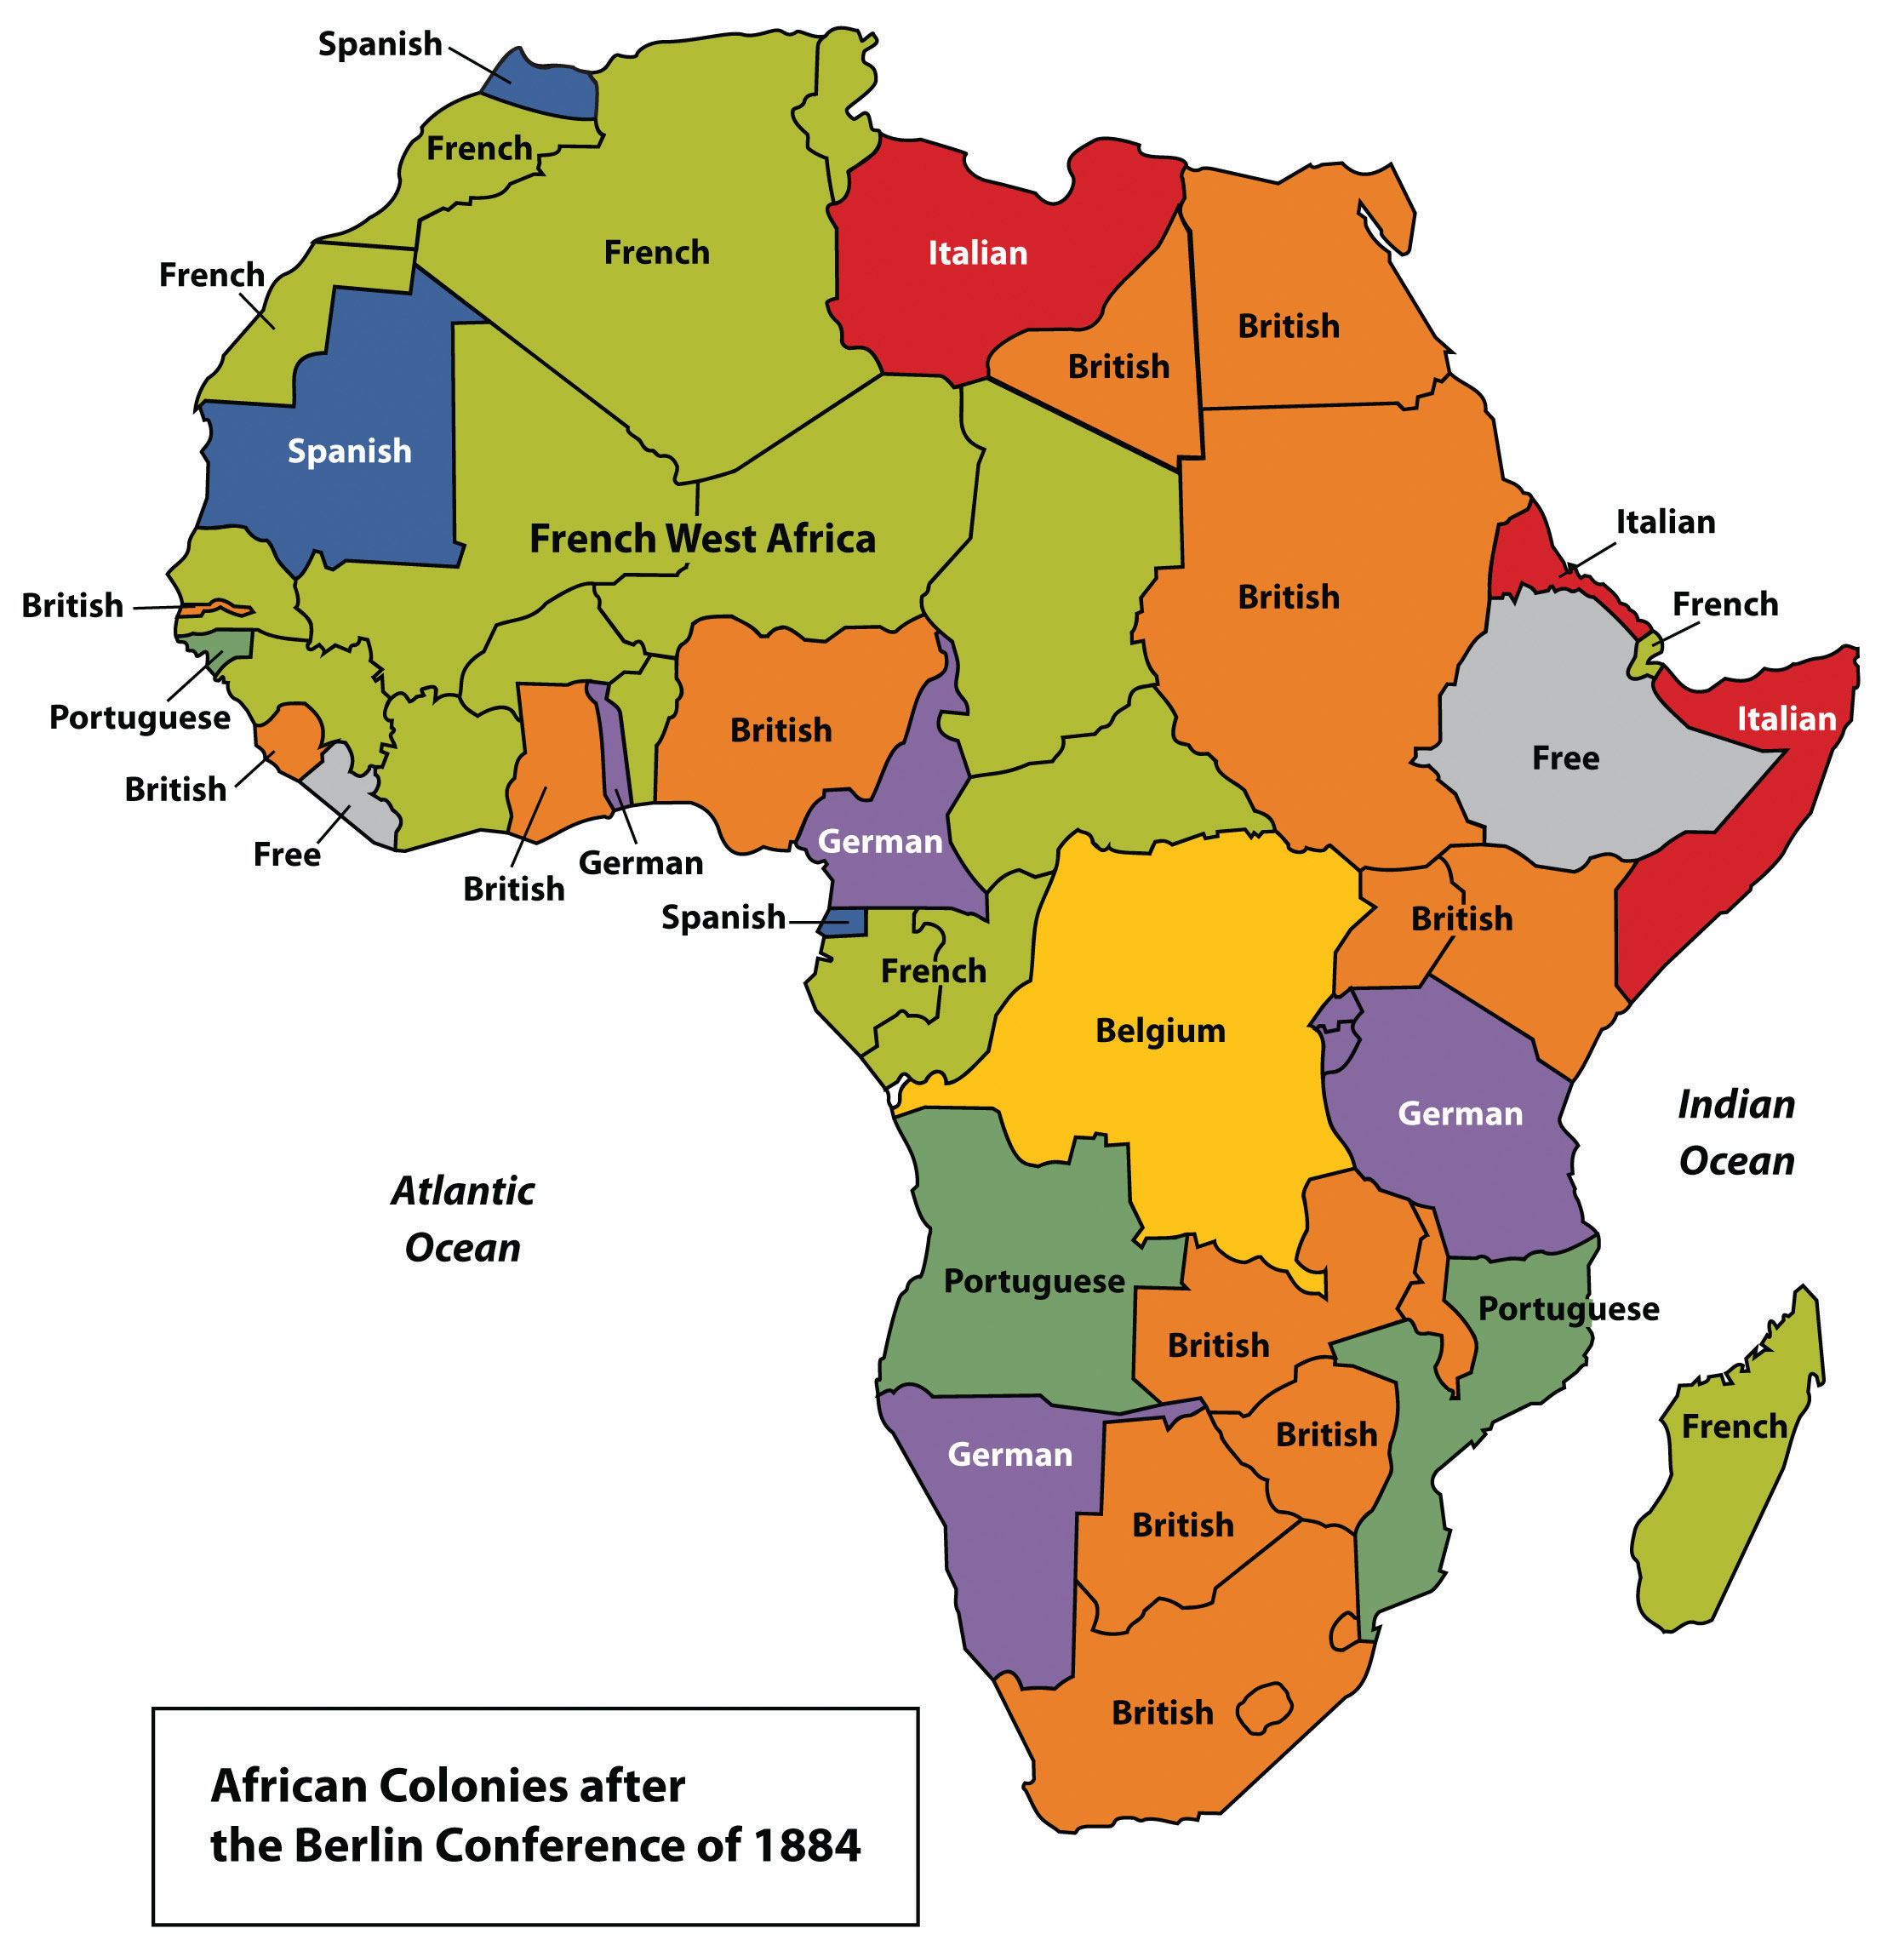 Guinea Africa Exports Colonialism Examples « 5 Best Binary